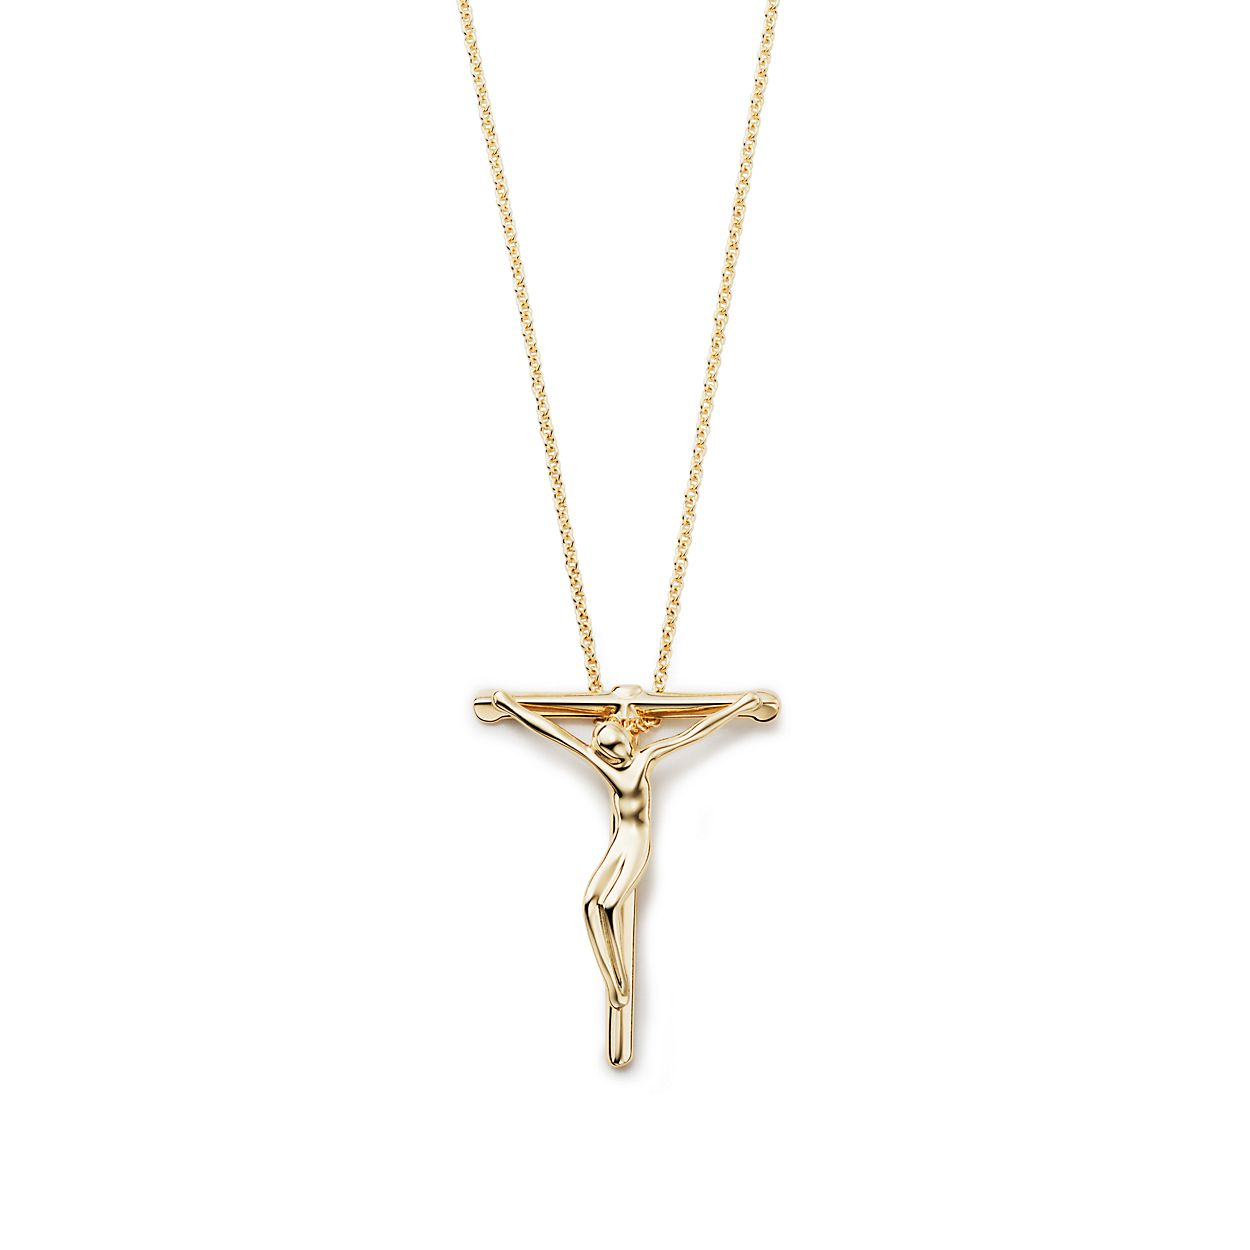 cross inri products product women crucifix gold s jesus necklace image color men tiana pendant jewelry